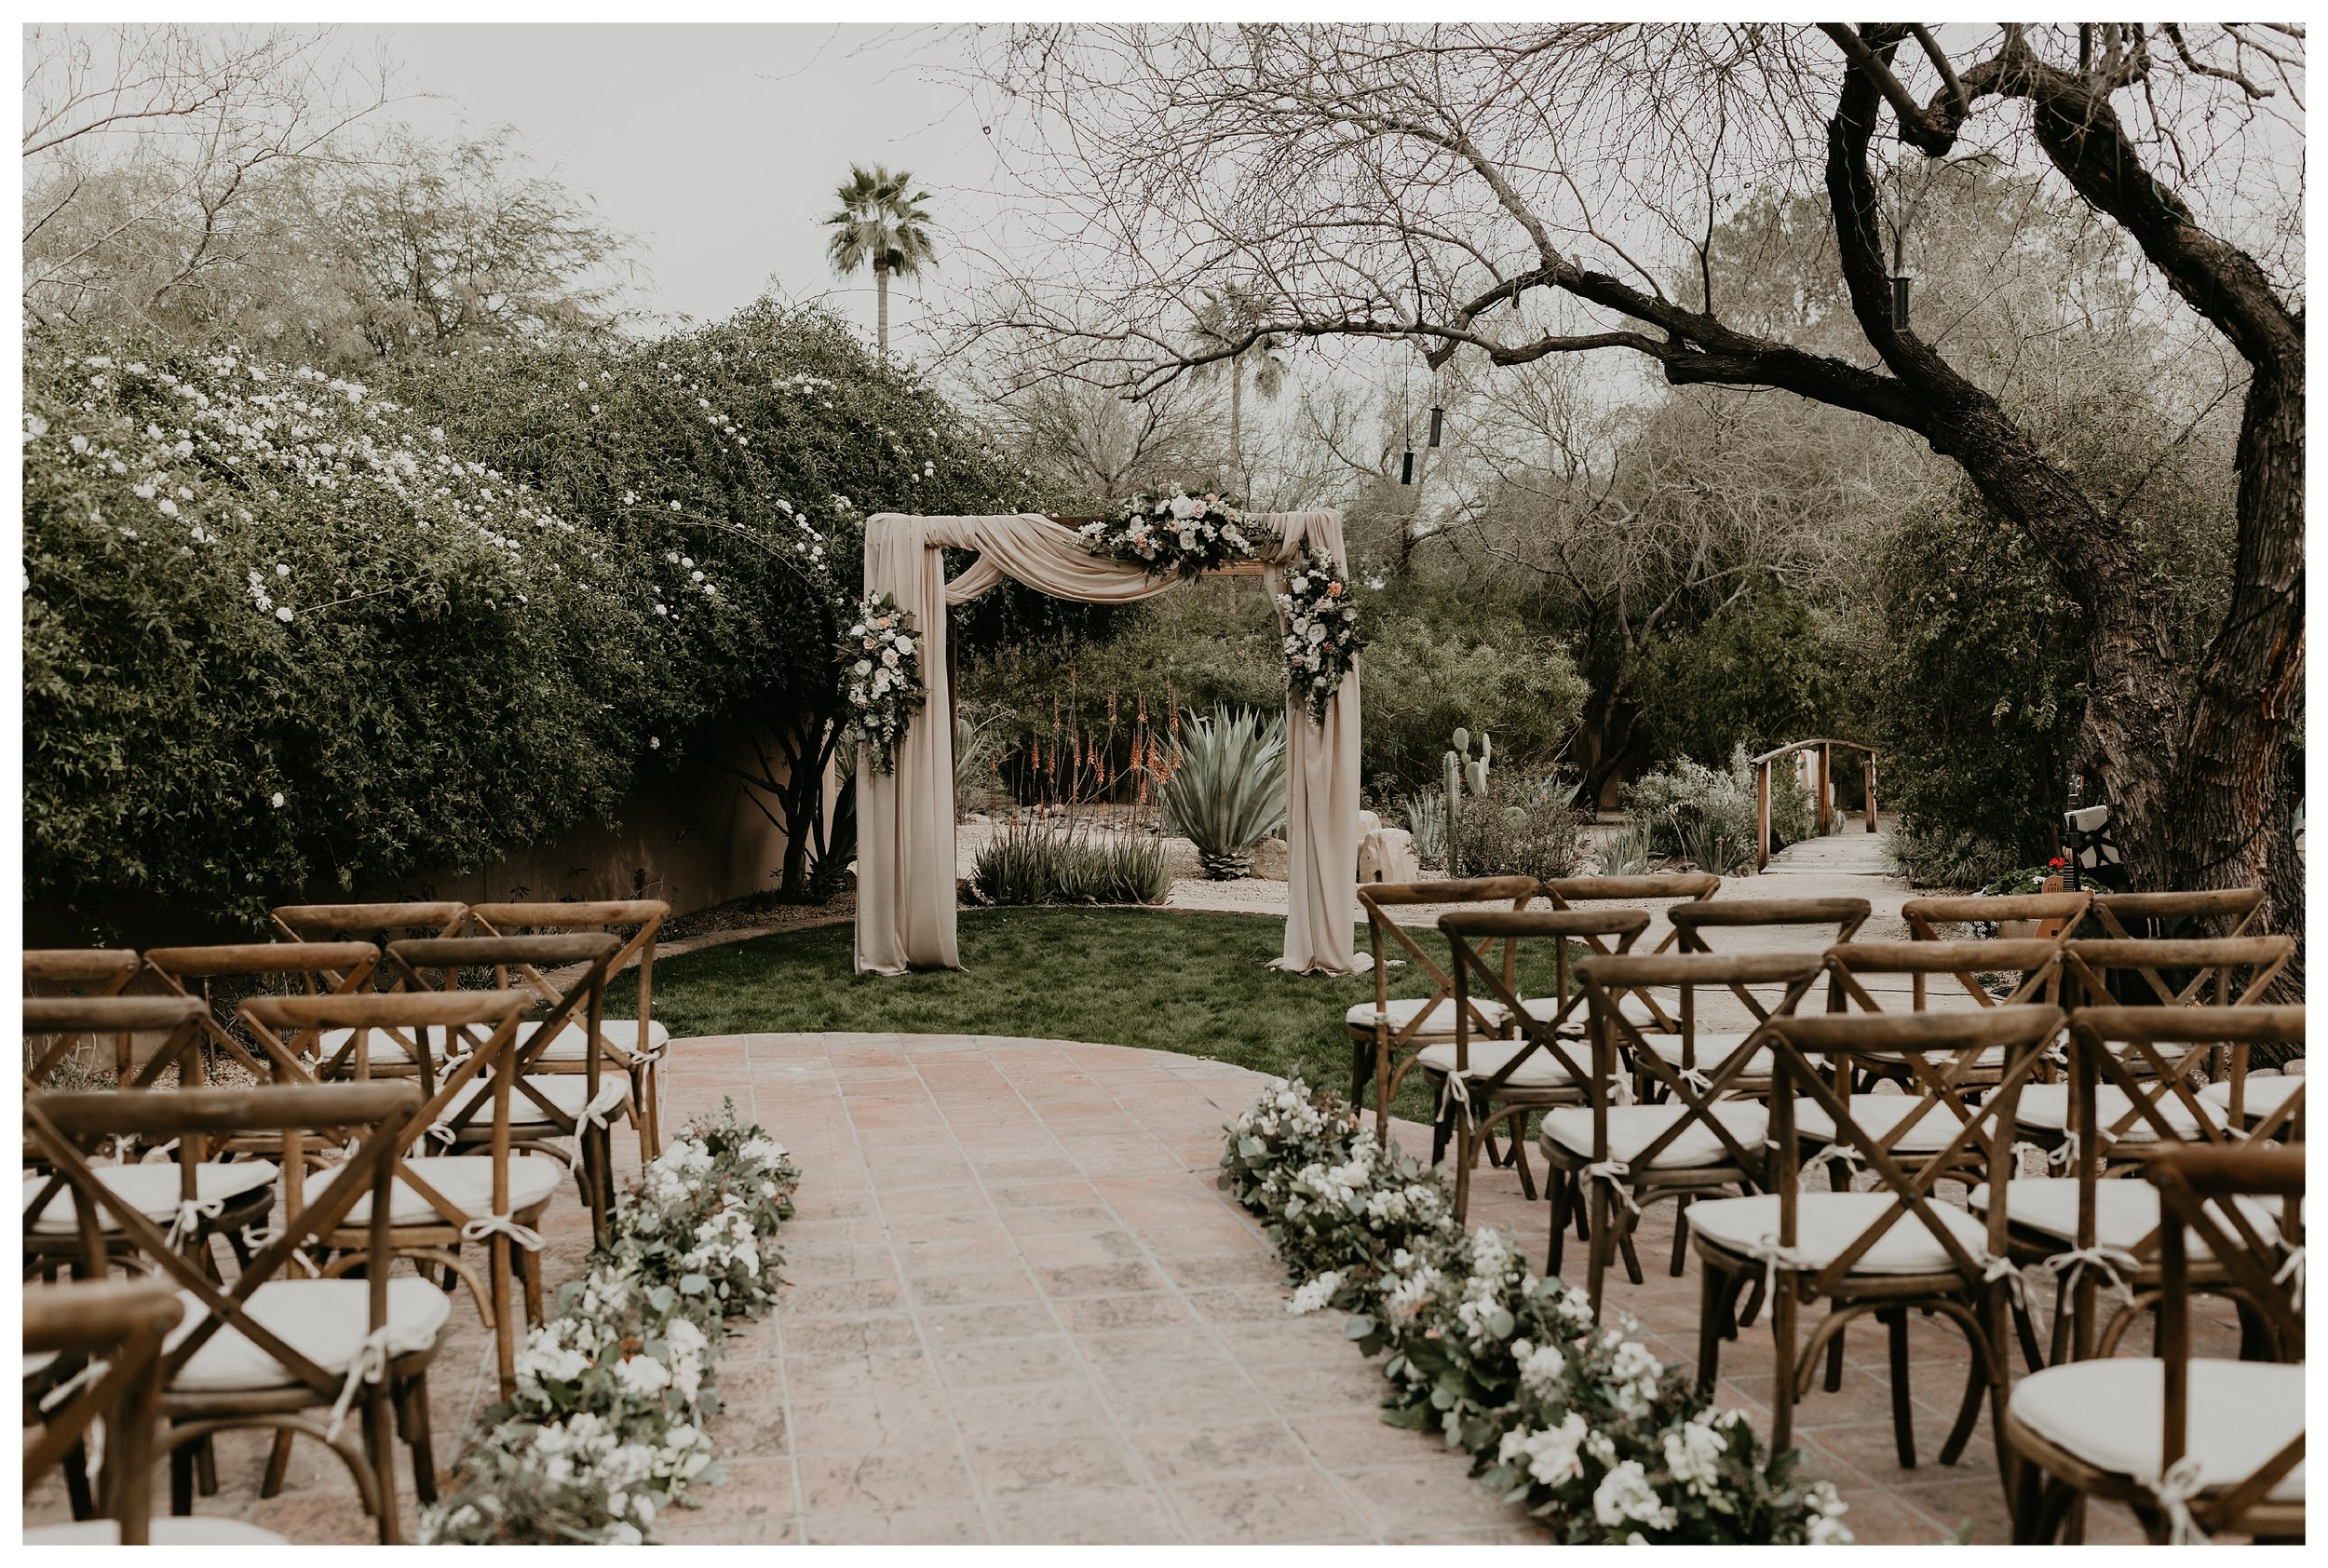 Ceremony area at Hermosa Inn in Arizona with cloth-wrapped alter wood wedding seating and greenery wedding decor and florals